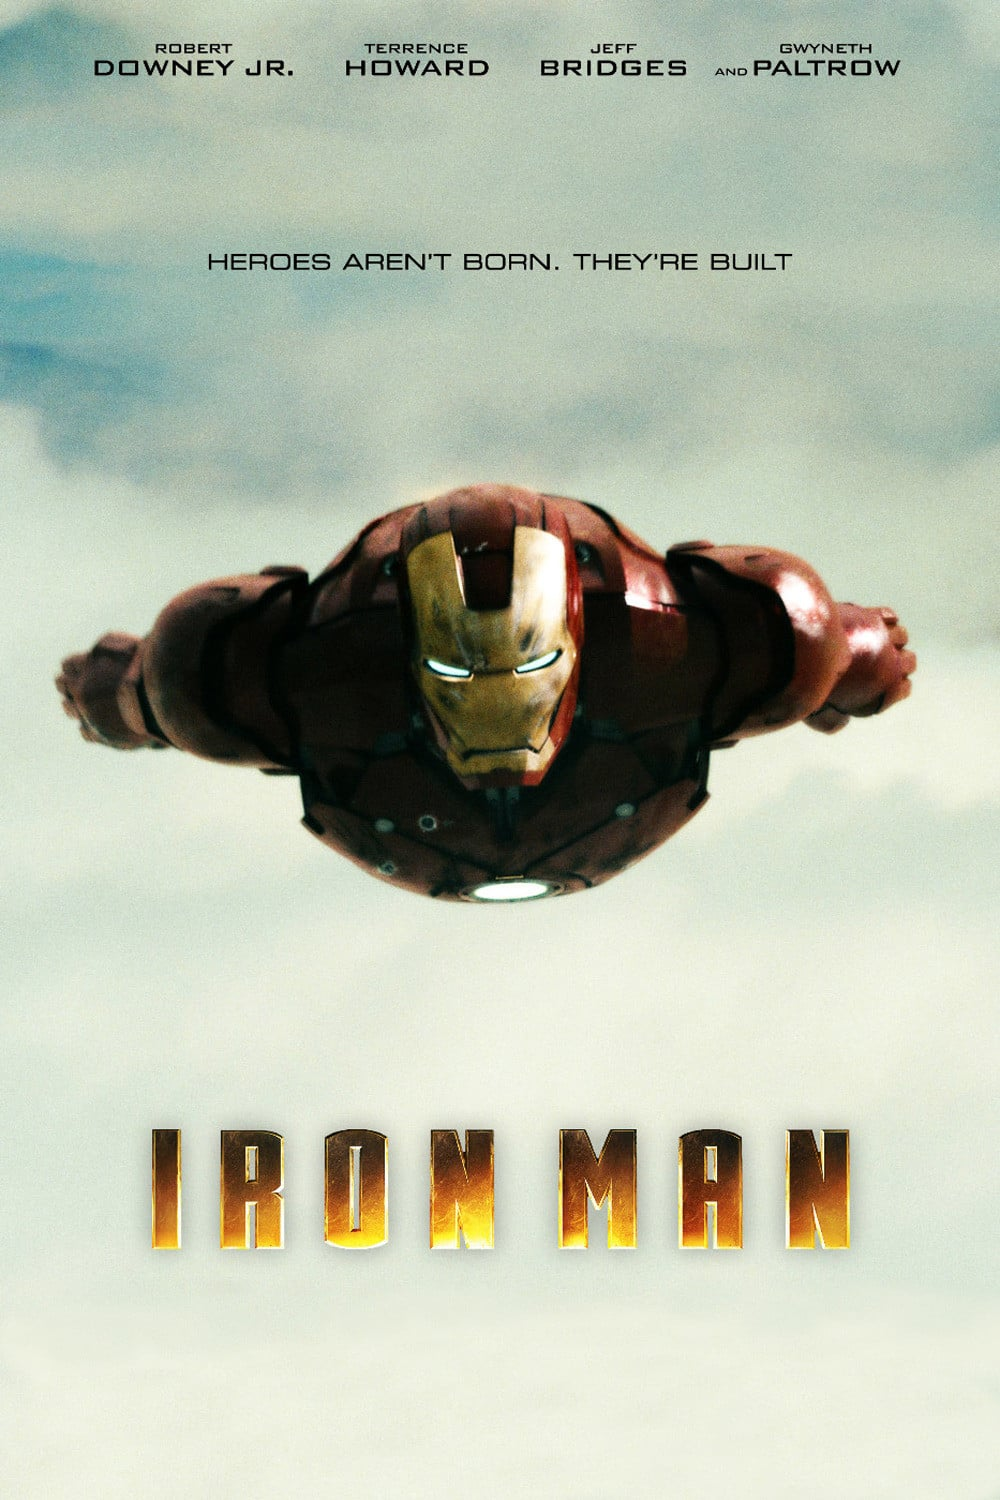 iron man poster high quality HD printable wallpapers 2008 tony stark flying